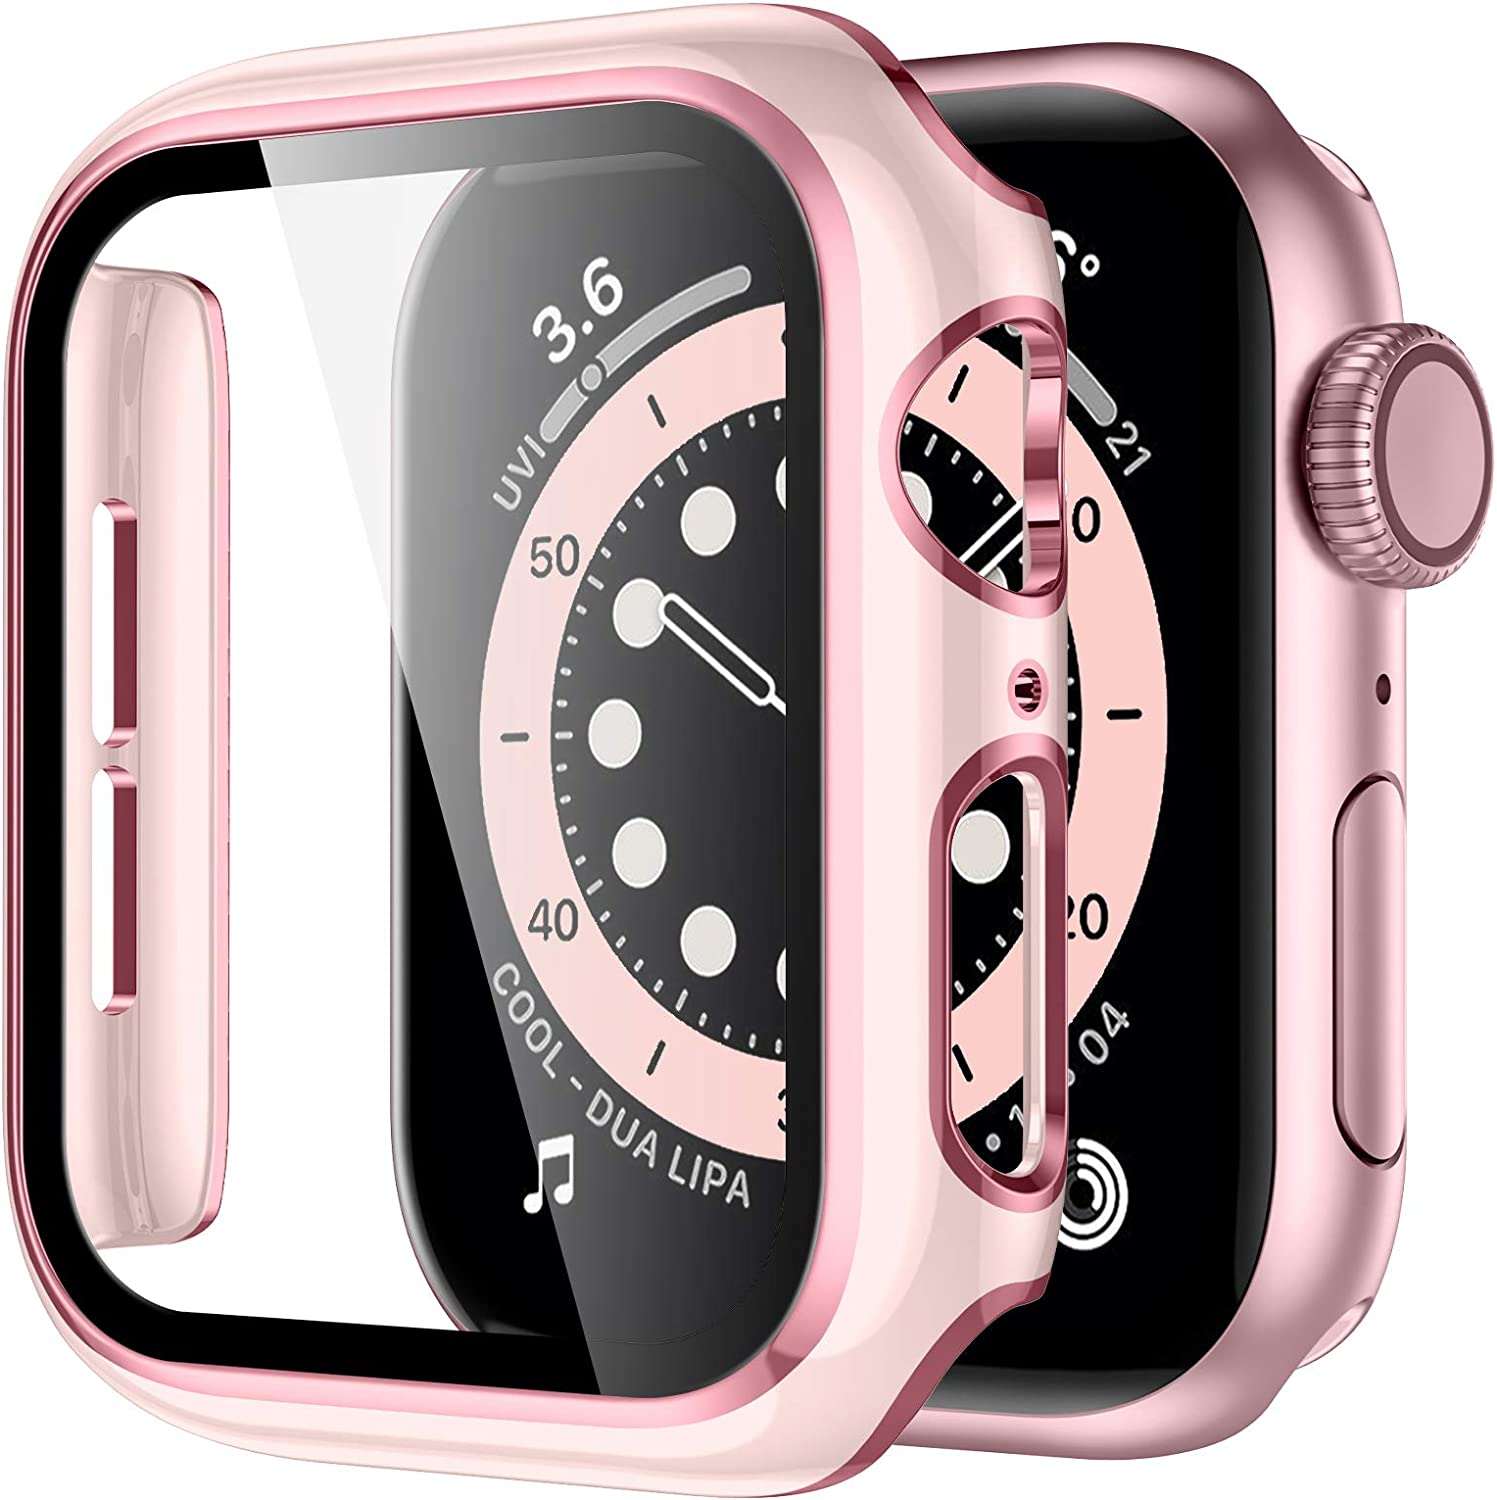 GEAK Hard Case Compatible for Apple Watch 40mm Built-in Screen Protector, Full Coverage Hard PC Cover with Pink Edge Screen Protector for Women Men iWatch 40mm Series 6/5/4/SE Sand Pink/Pink